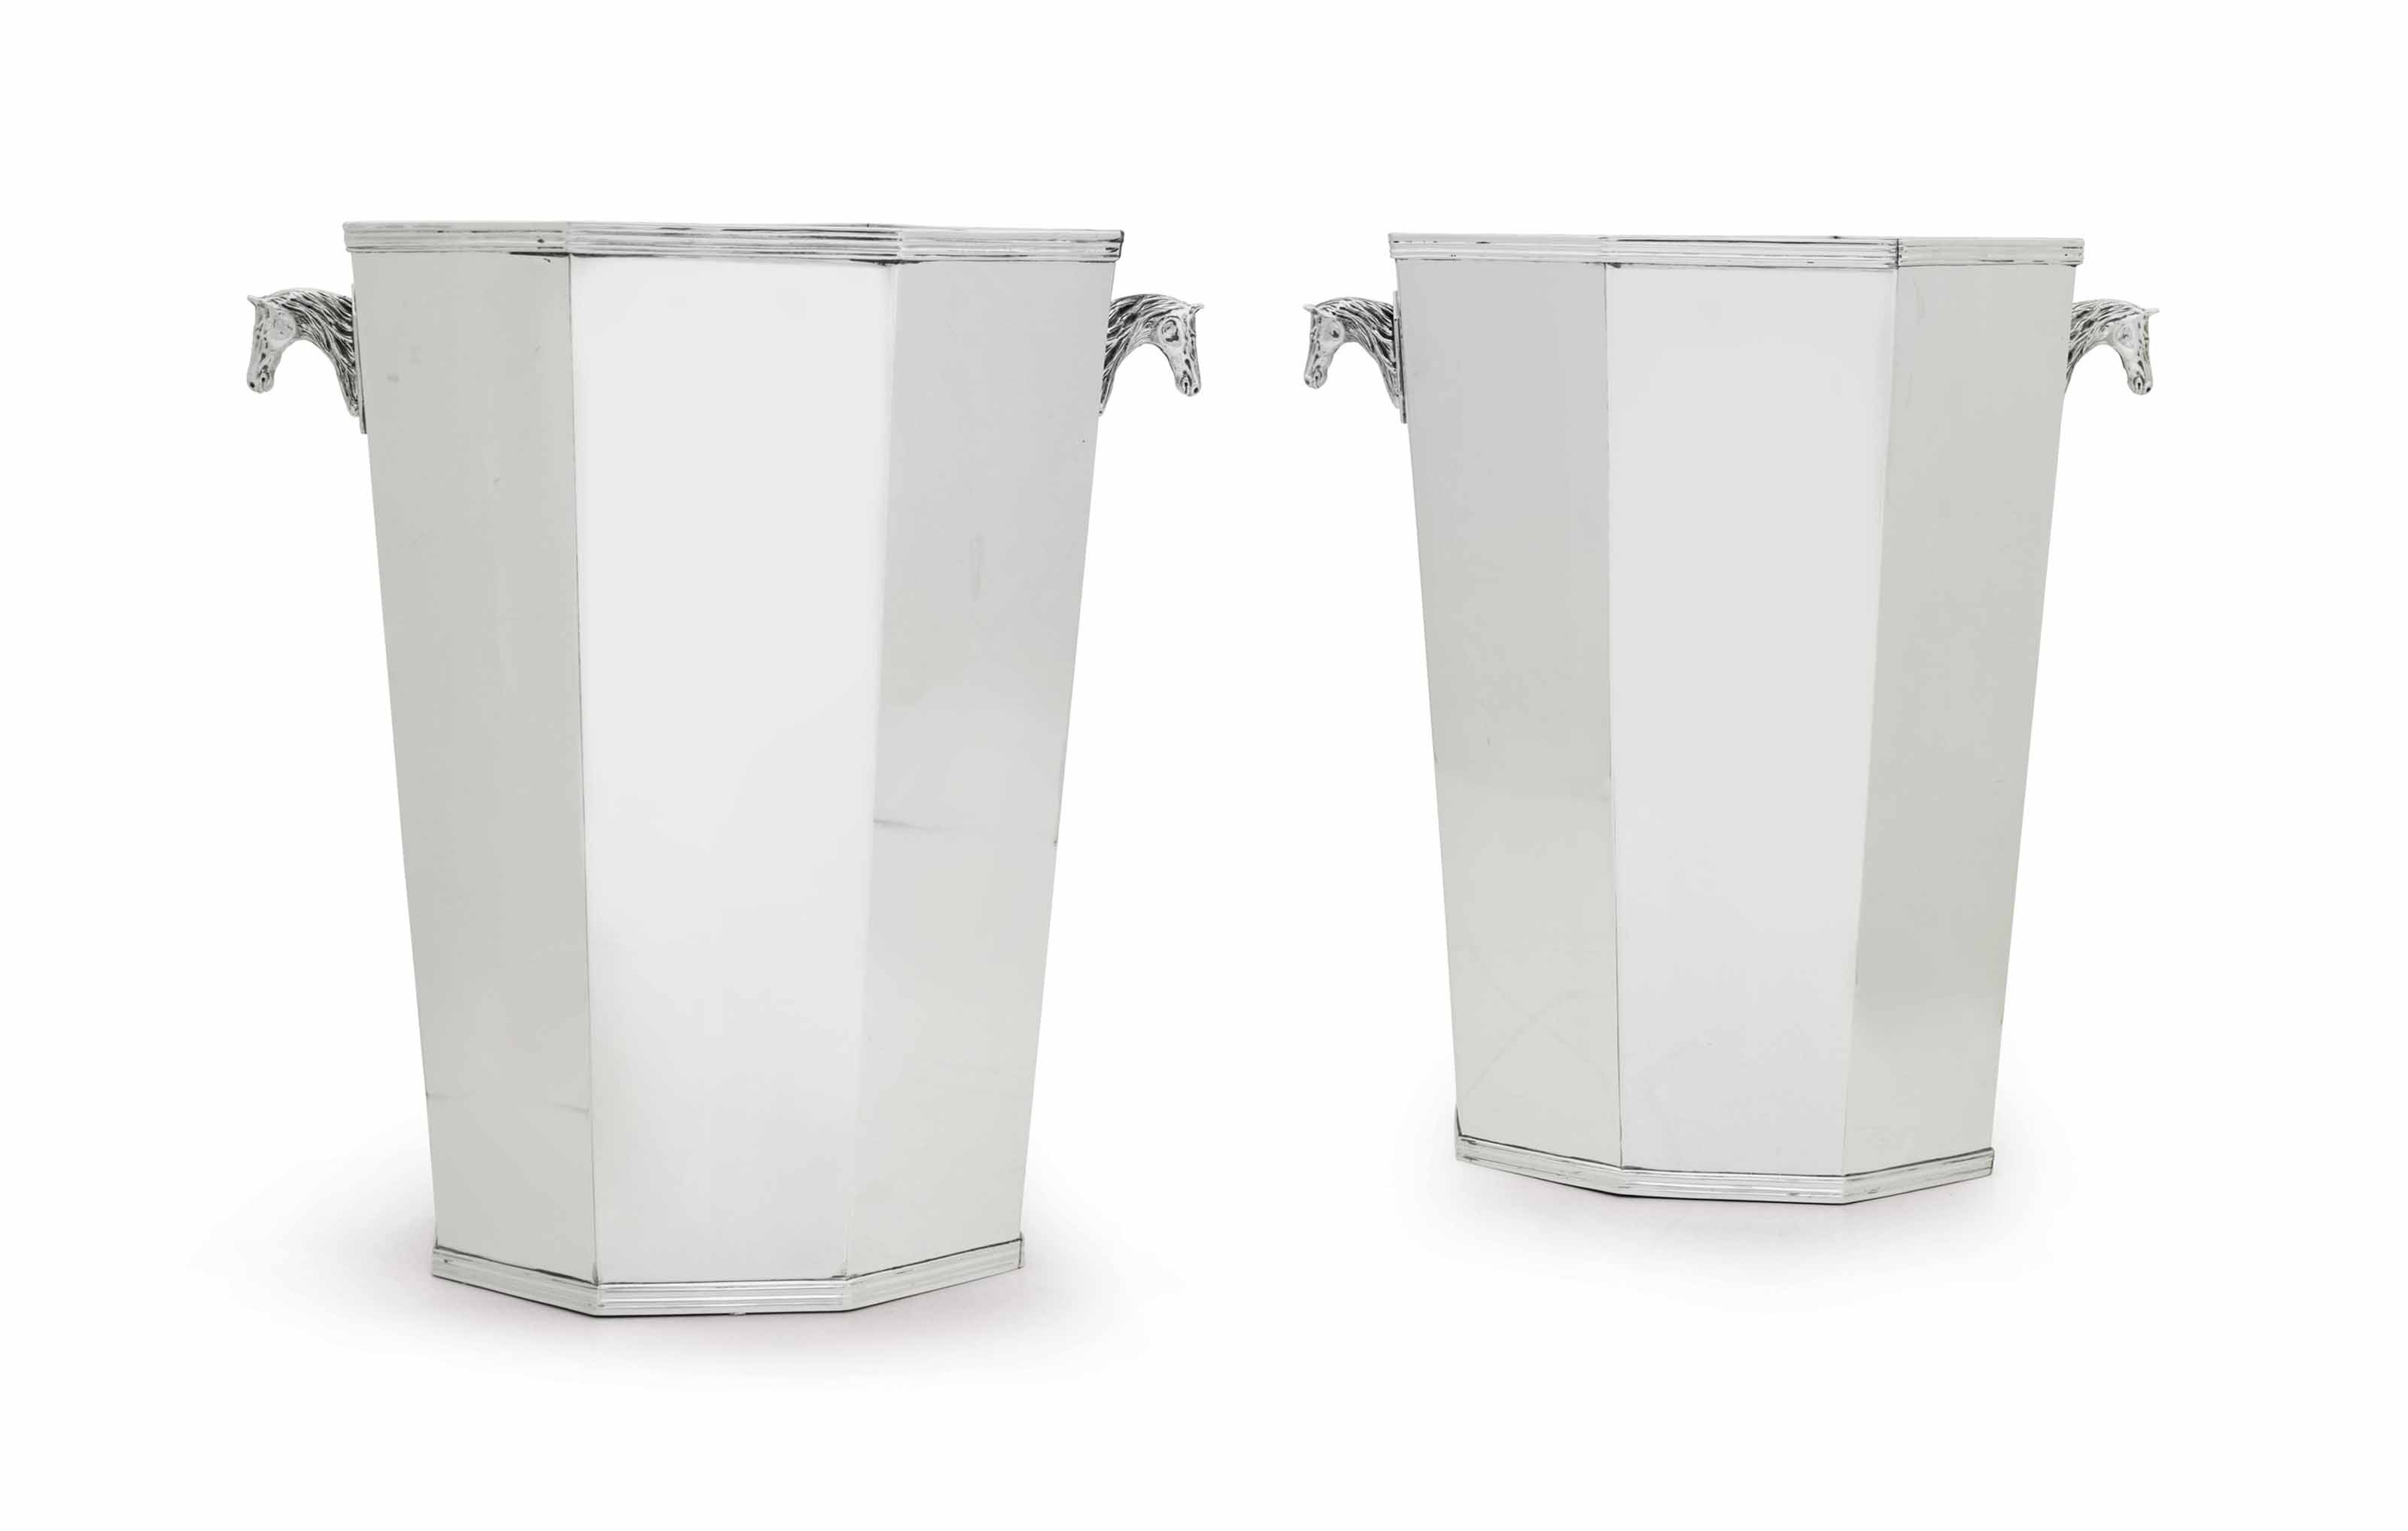 A PAIR OF MONUMENTAL FRENCH SILVER WINE COOLERS